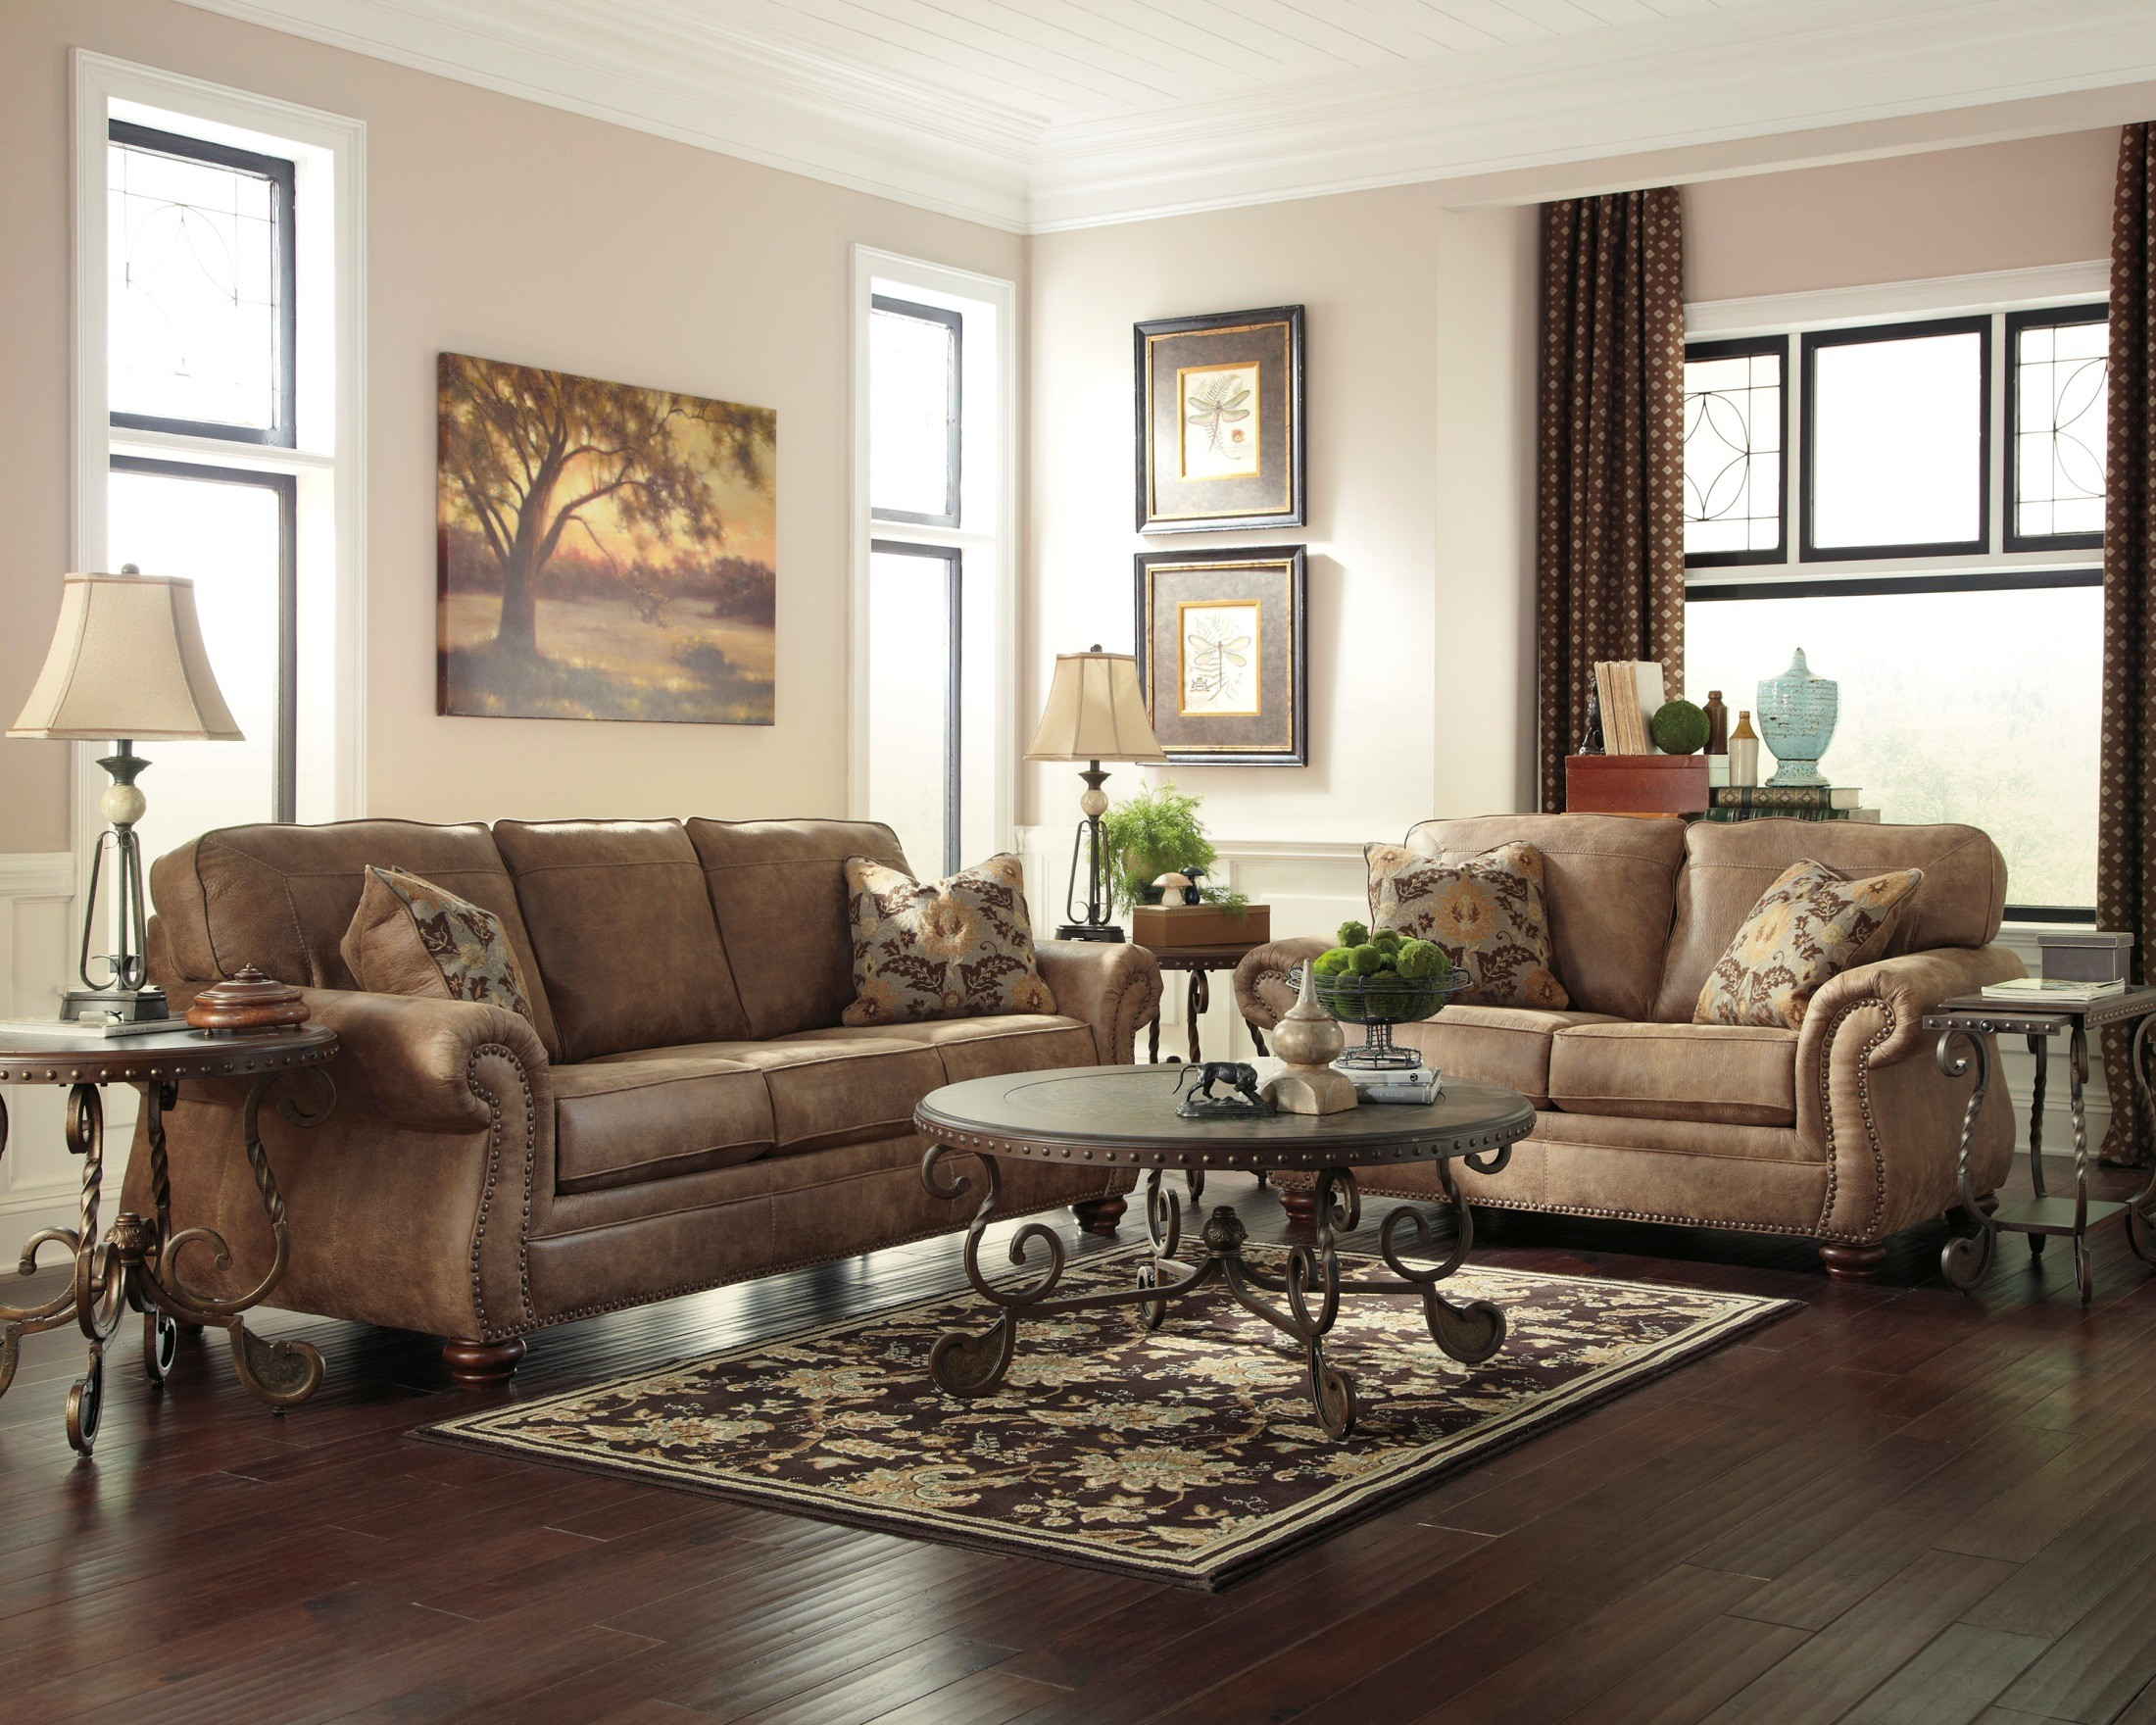 Larkinhurst Earth Living Room Set From Ashley 31901 38 35 Coleman Furniture